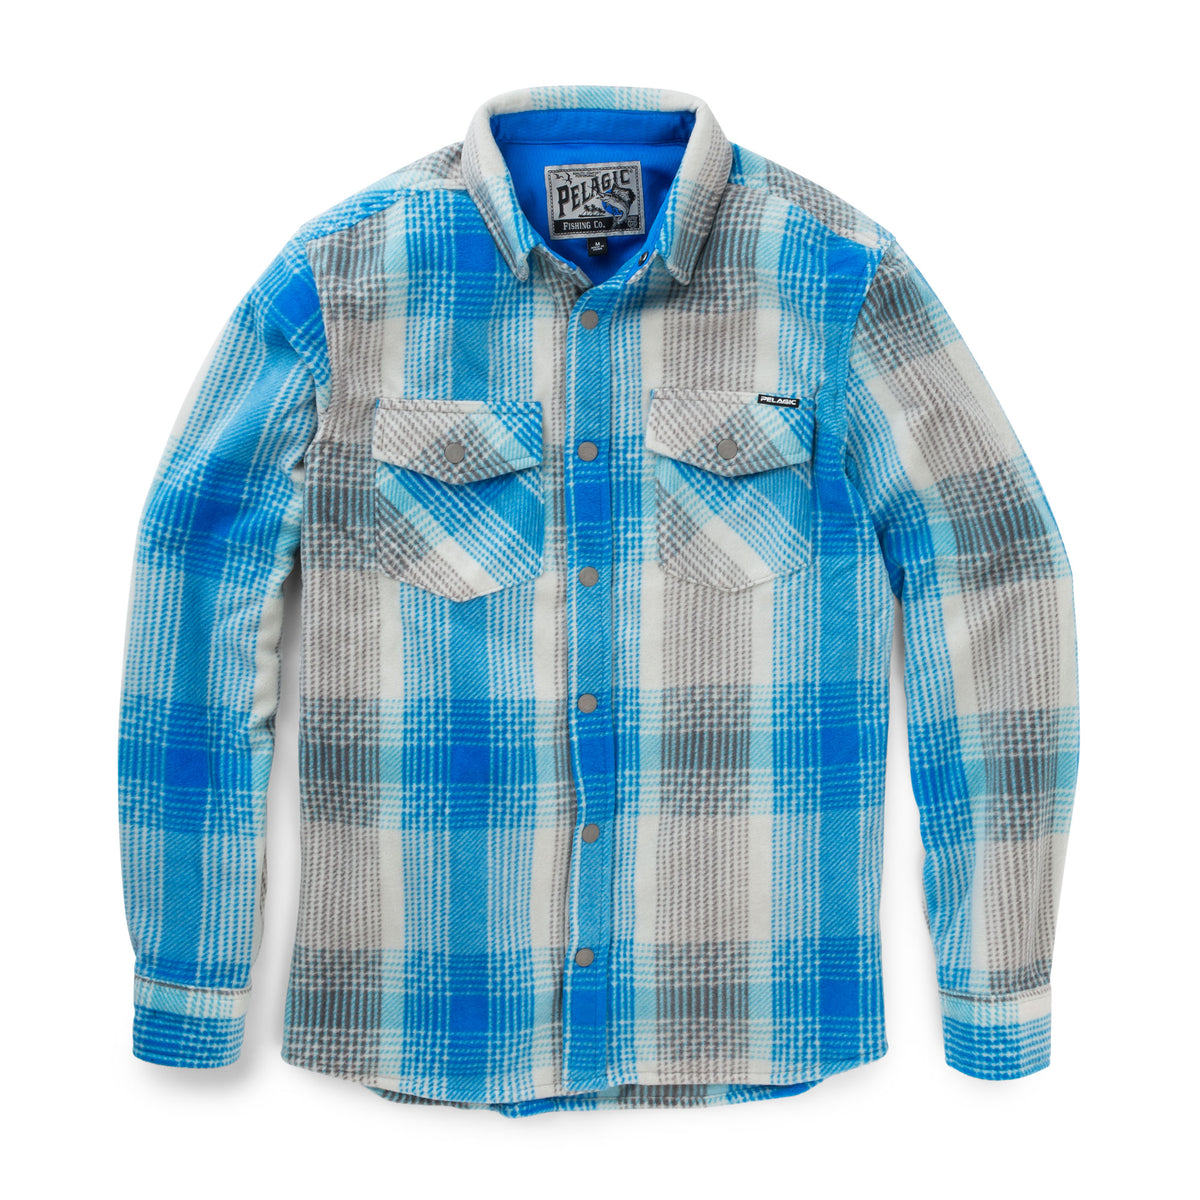 Quest Performance Flannel Big Image - 1